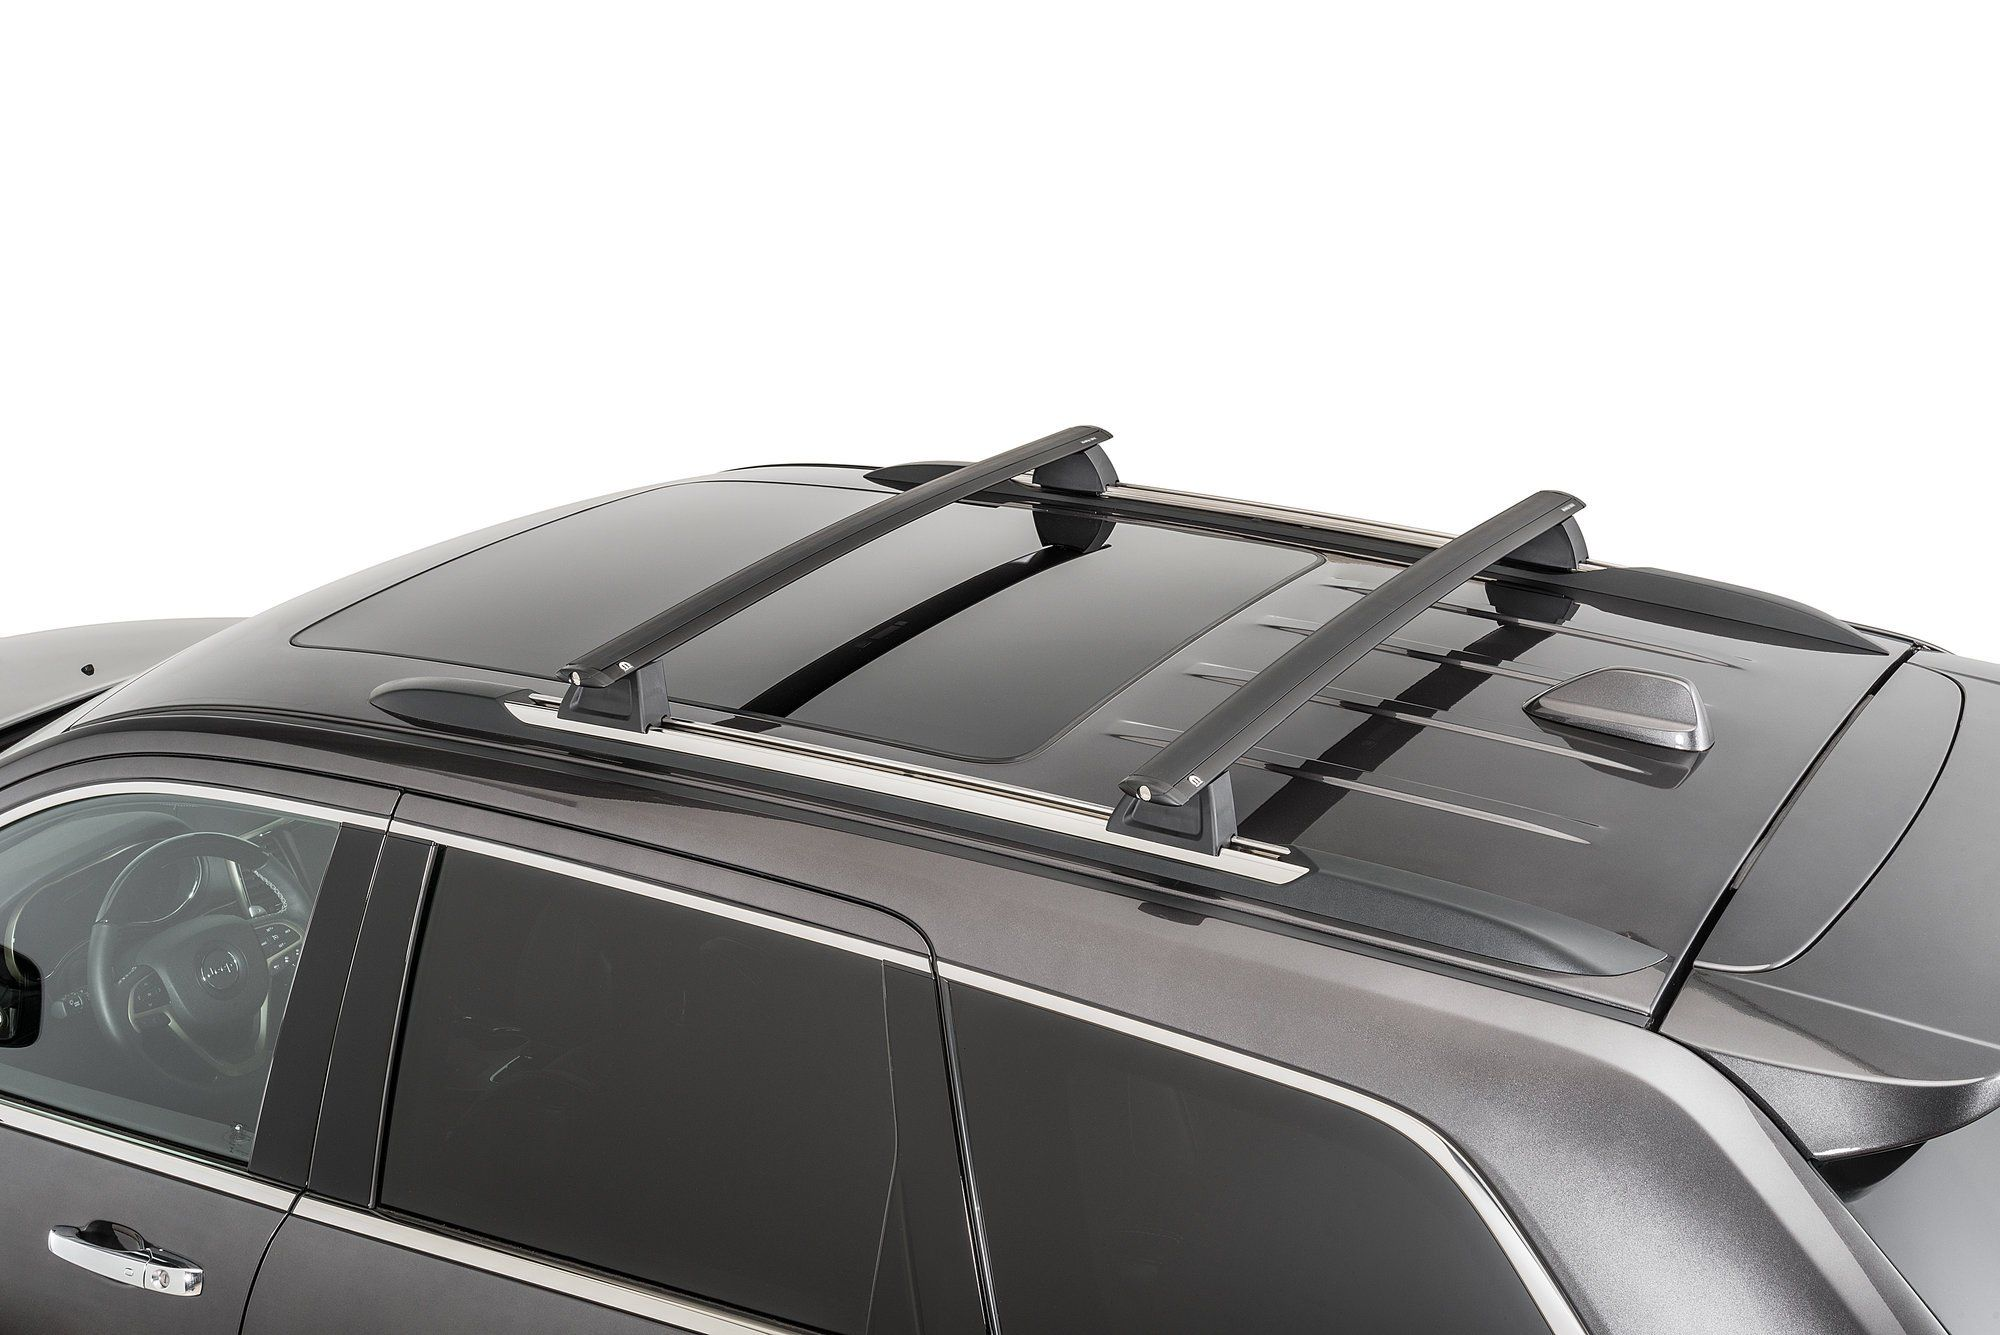 Mopar 82212072ad Roof Rack Cross Rails Roof Rack Cross Bars For 2018 Jeep Grand Cherokee In 2020 Jeep Cherokee Roof Rack Jeep Grand Cherokee Jeep Grand